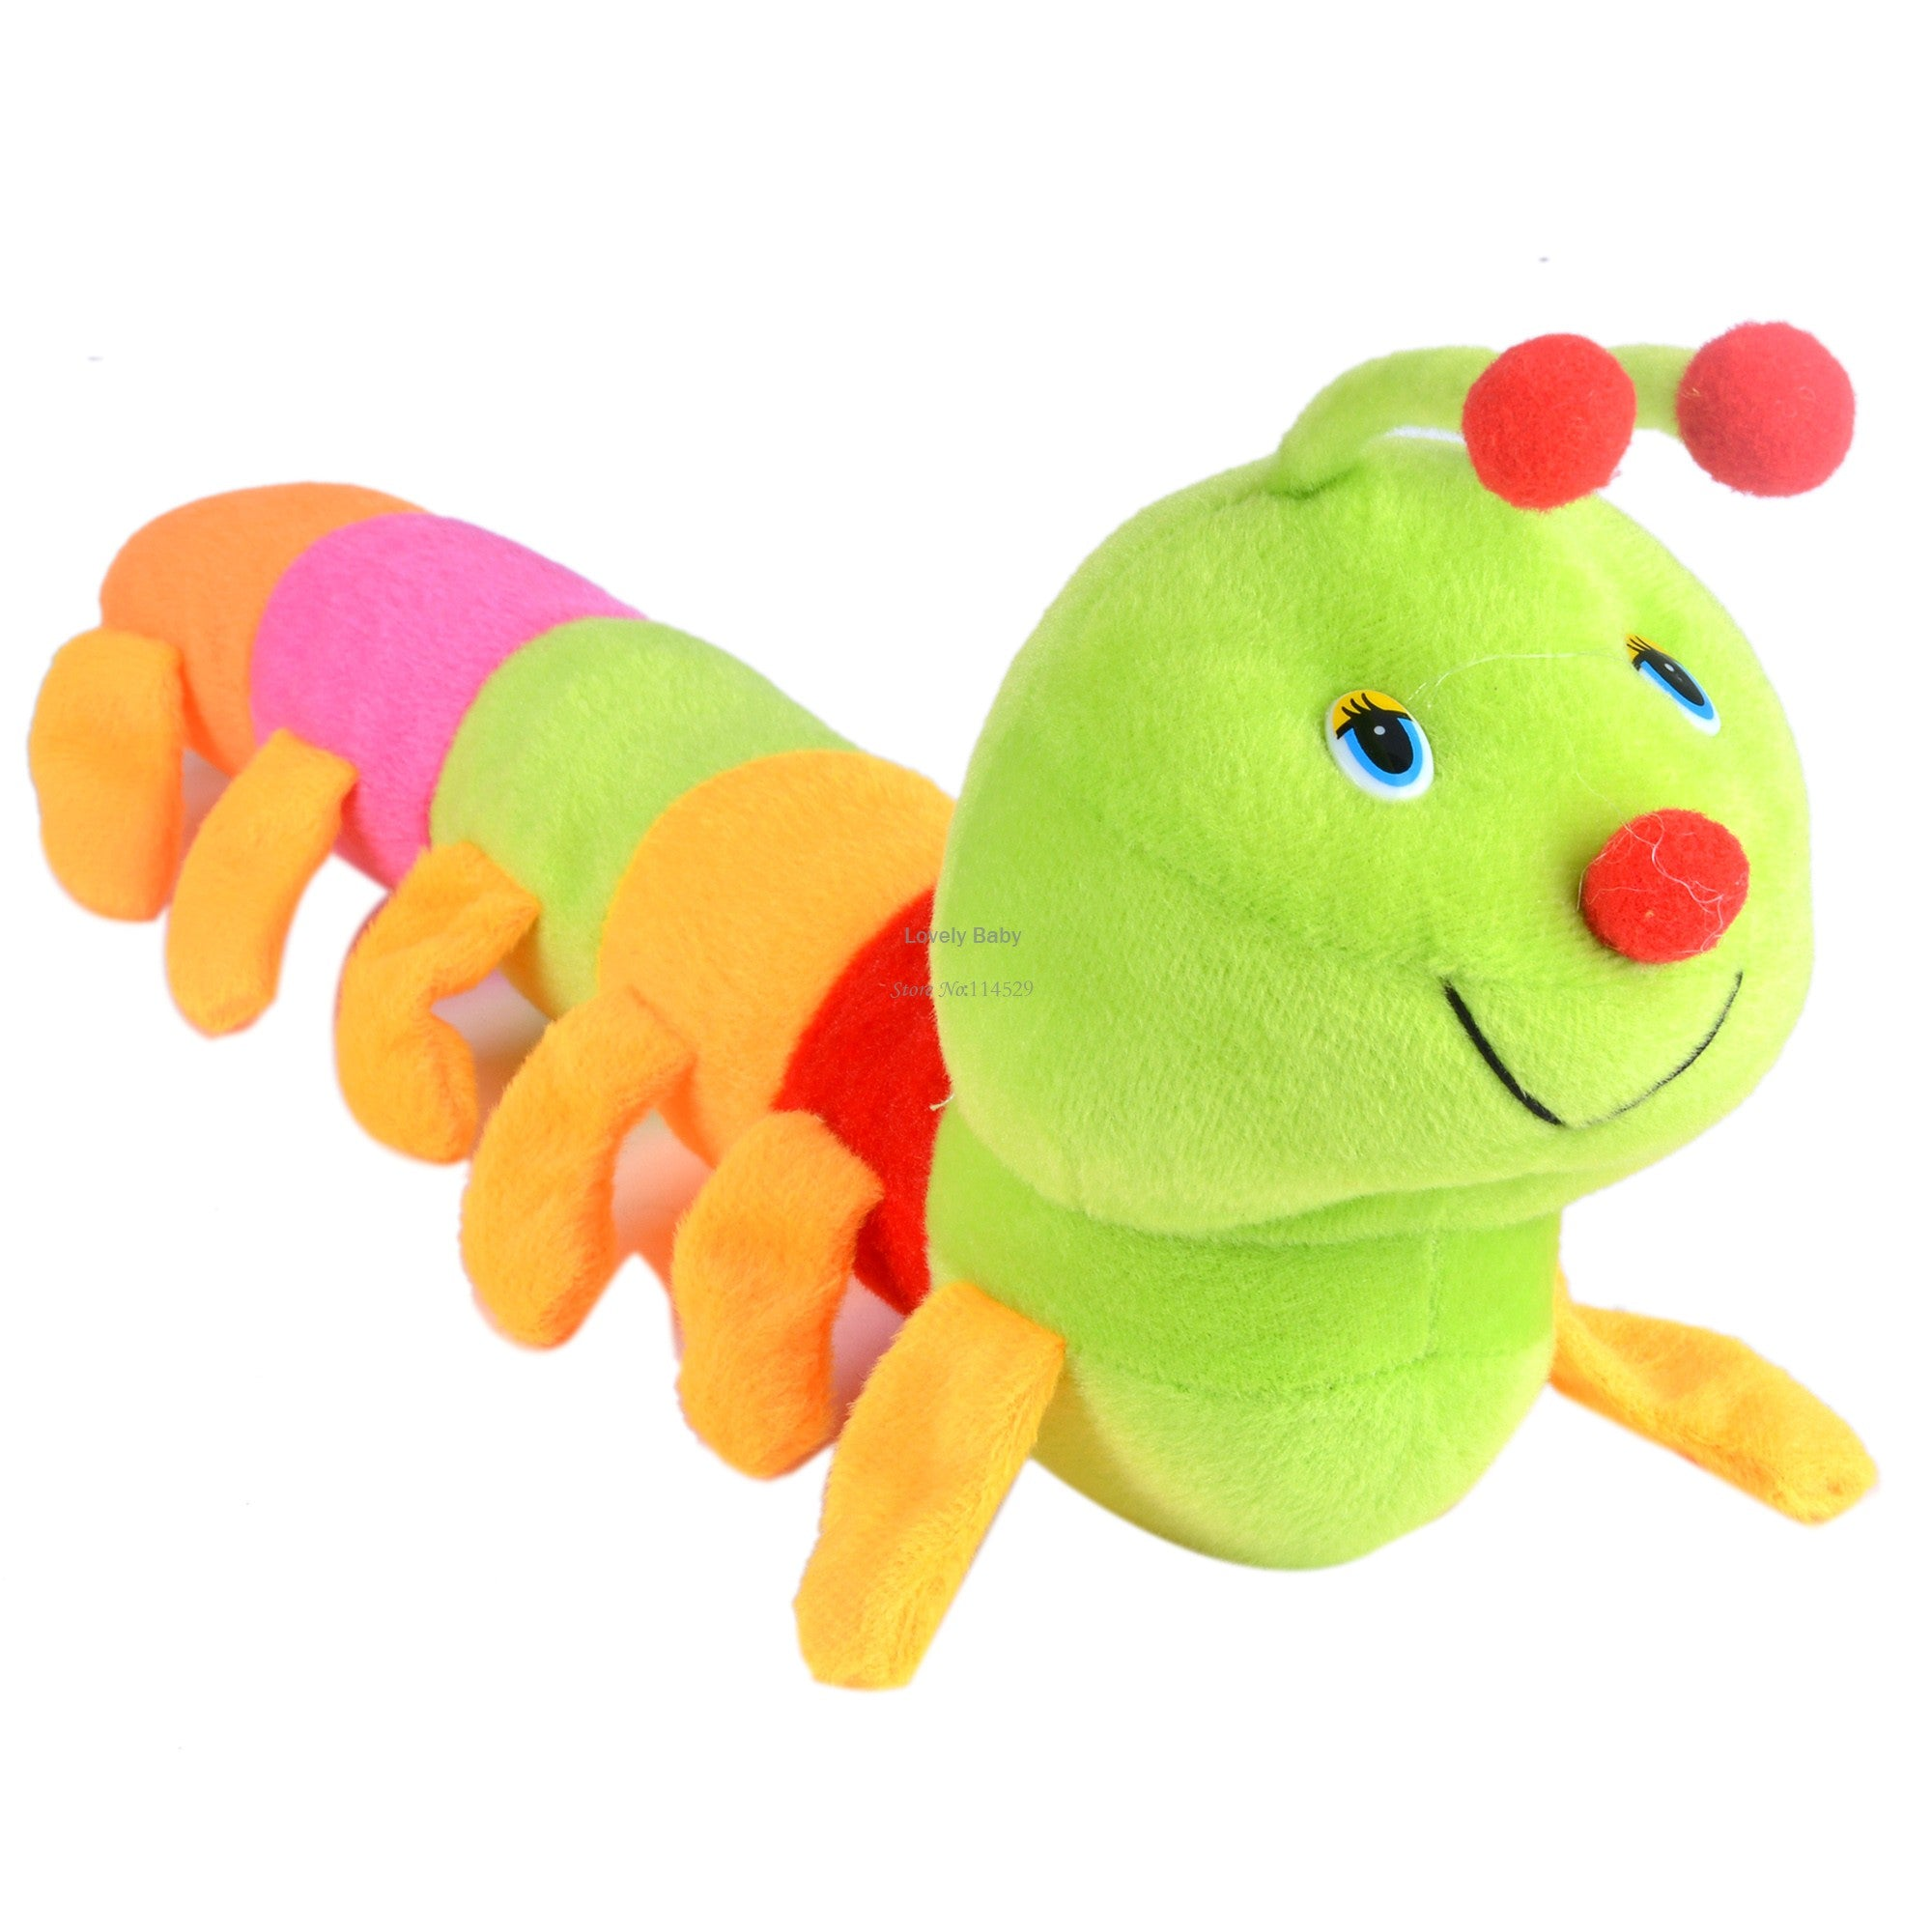 Toy, Soft Toys for Children